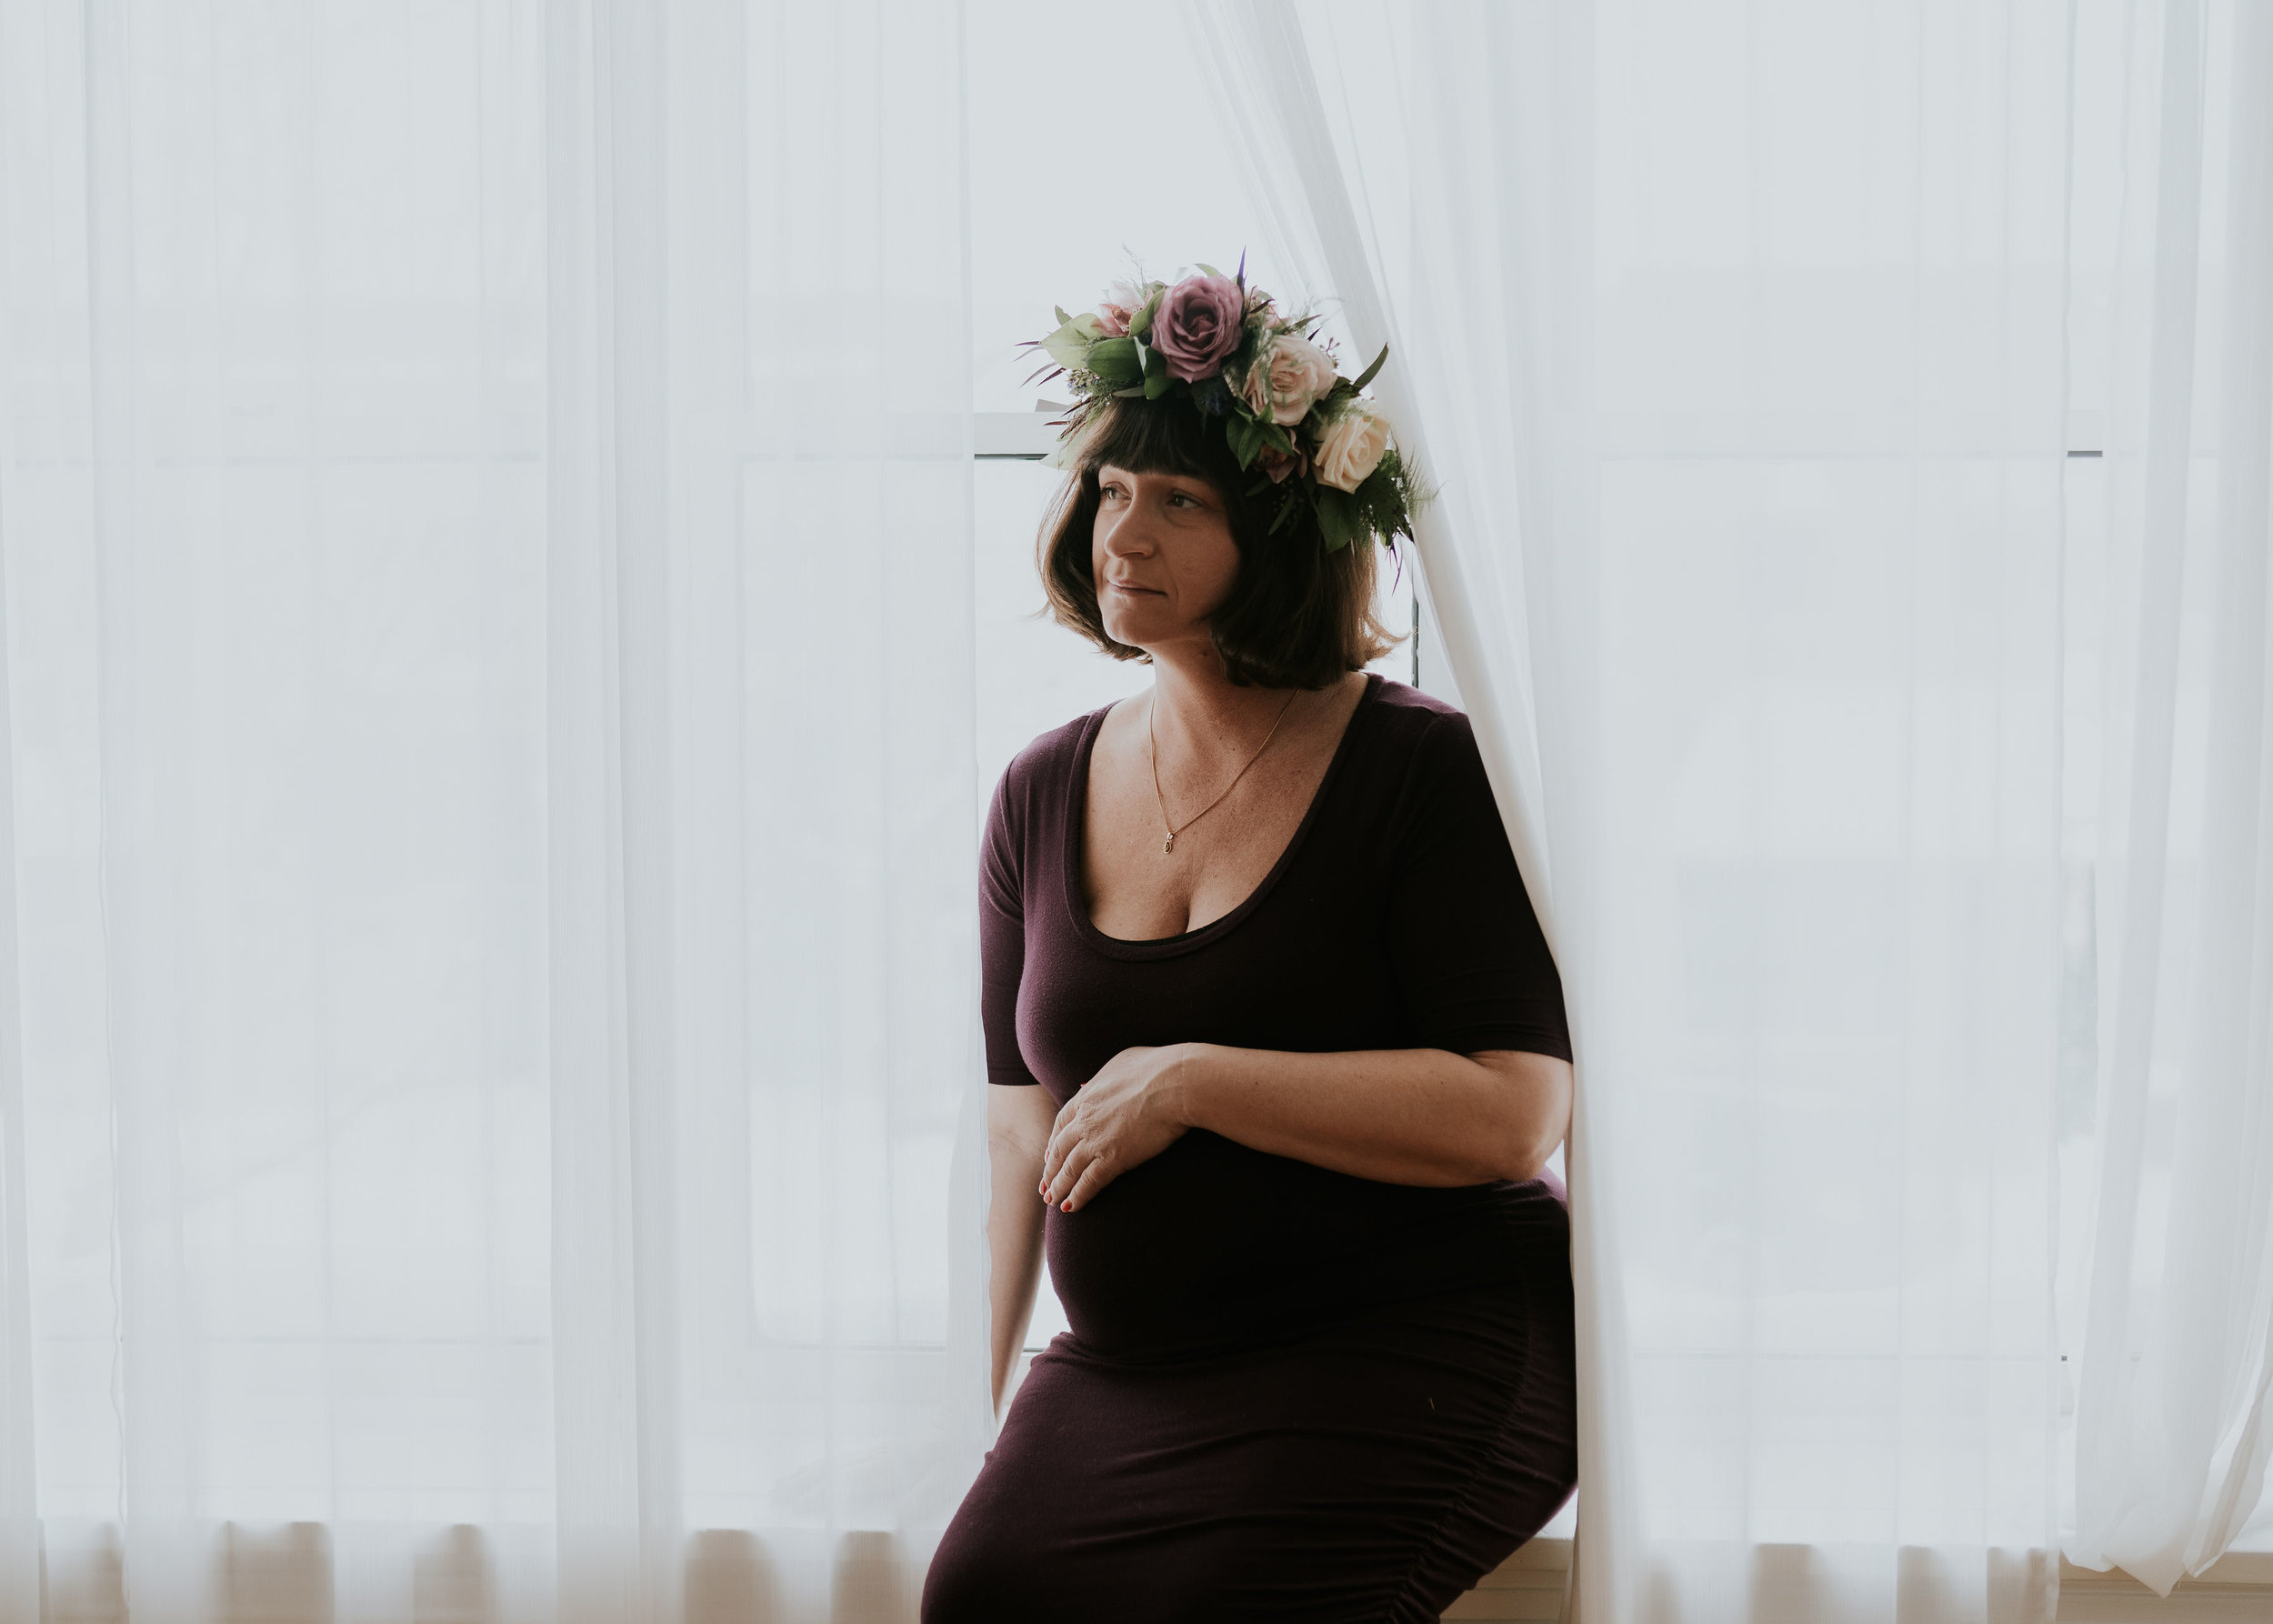 pregnant mother in Des Moines wears a custom flower crown wreath of lavender roses, and cream roses, and seeded eucalyptus